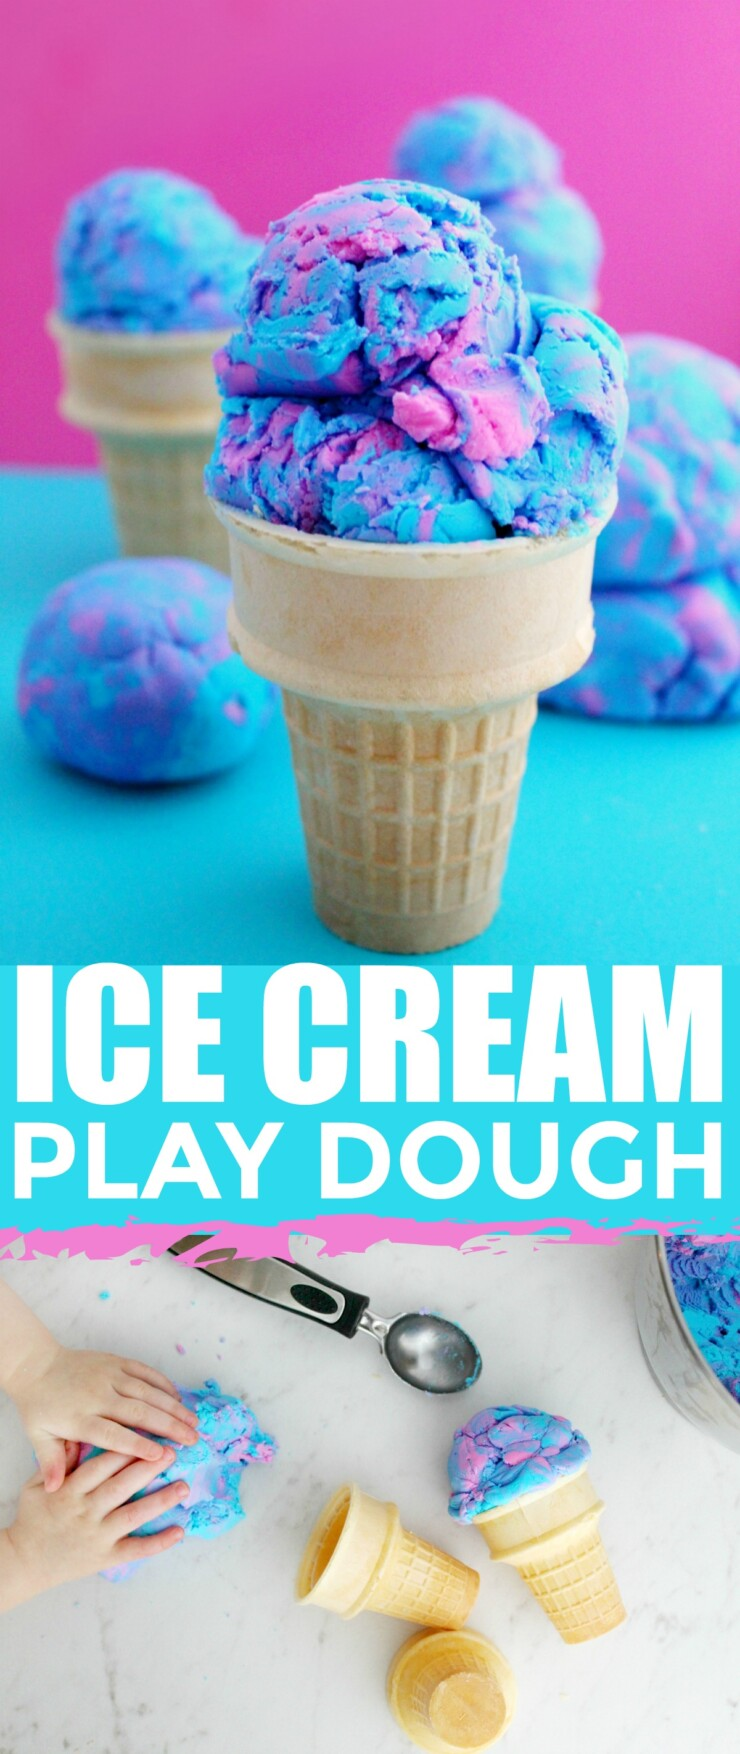 This 2-Ingredient Cotton Candy Ice Cream Play Dough is Gluten Free and edible. Kids will enjoy playing with this play dough with ice cream cones, an ice cream scoop, sundae bowls, maybe even sprinkles for some imaginative fun!